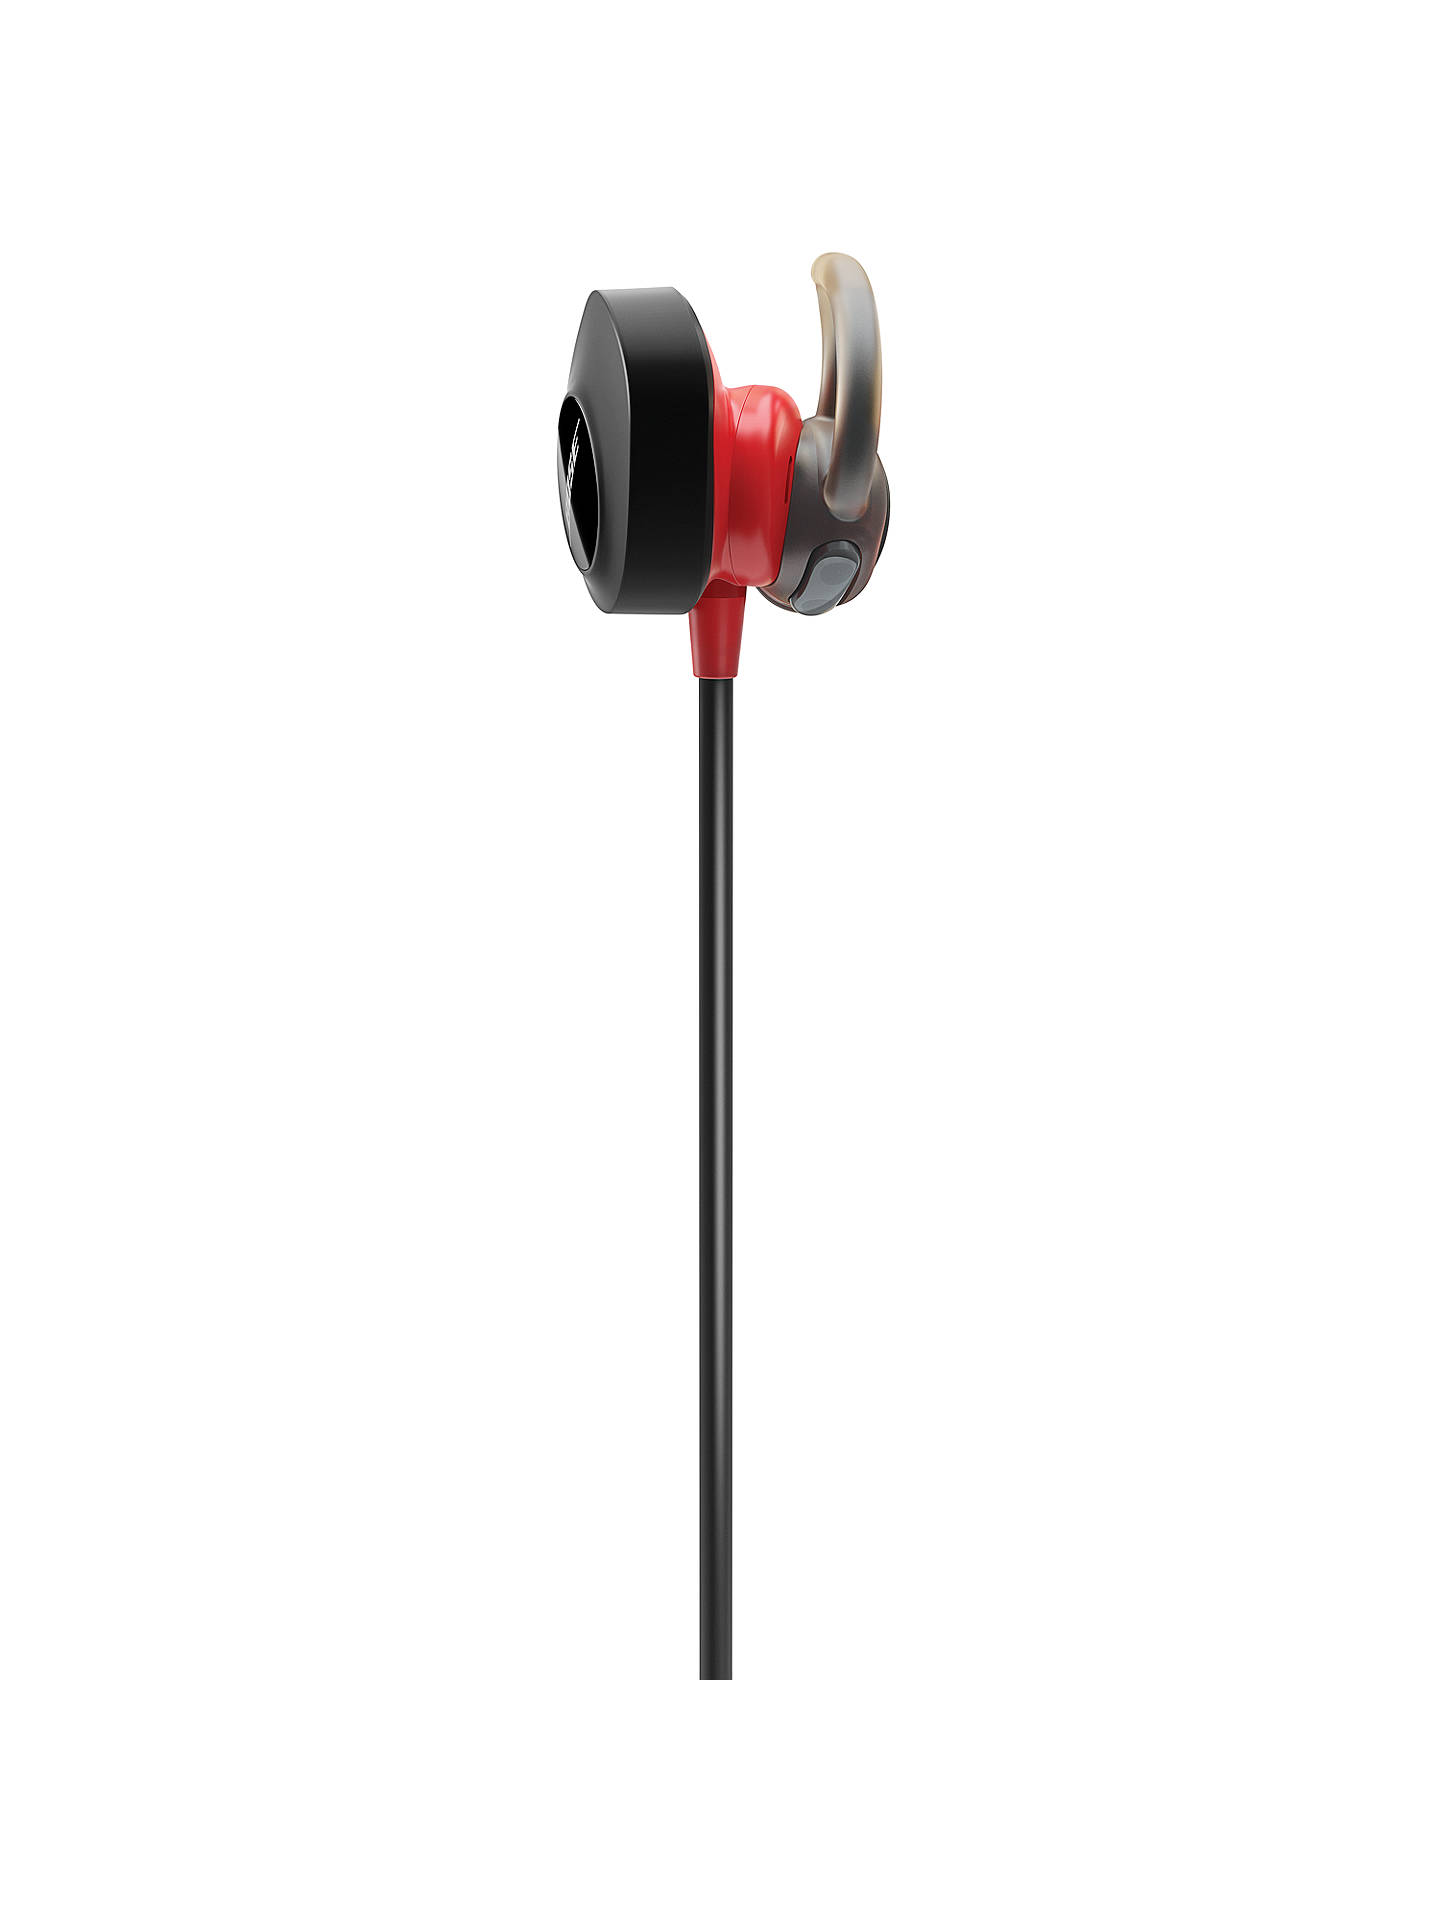 BuyBose® SoundSport™ Pulse Sweat & Weather-Resistant Wireless In-Ear Headphones with Heart Rate Sensor, Bluetooth/NFC, 3-Button In-Line Remote & Carry Case, Red/Black Online at johnlewis.com